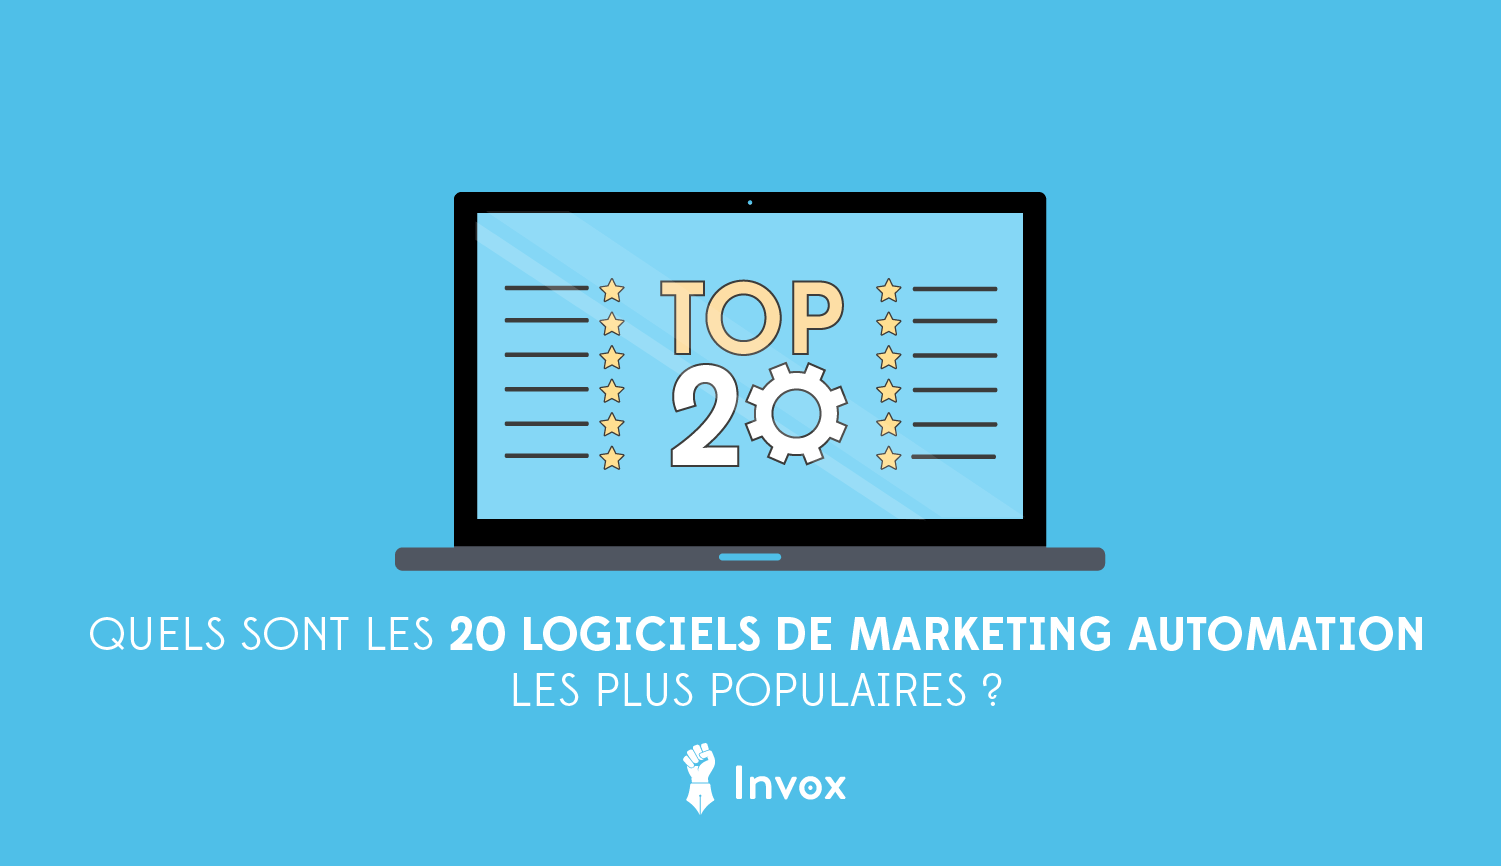 invox-blog-20-logiciels-marketing-automation